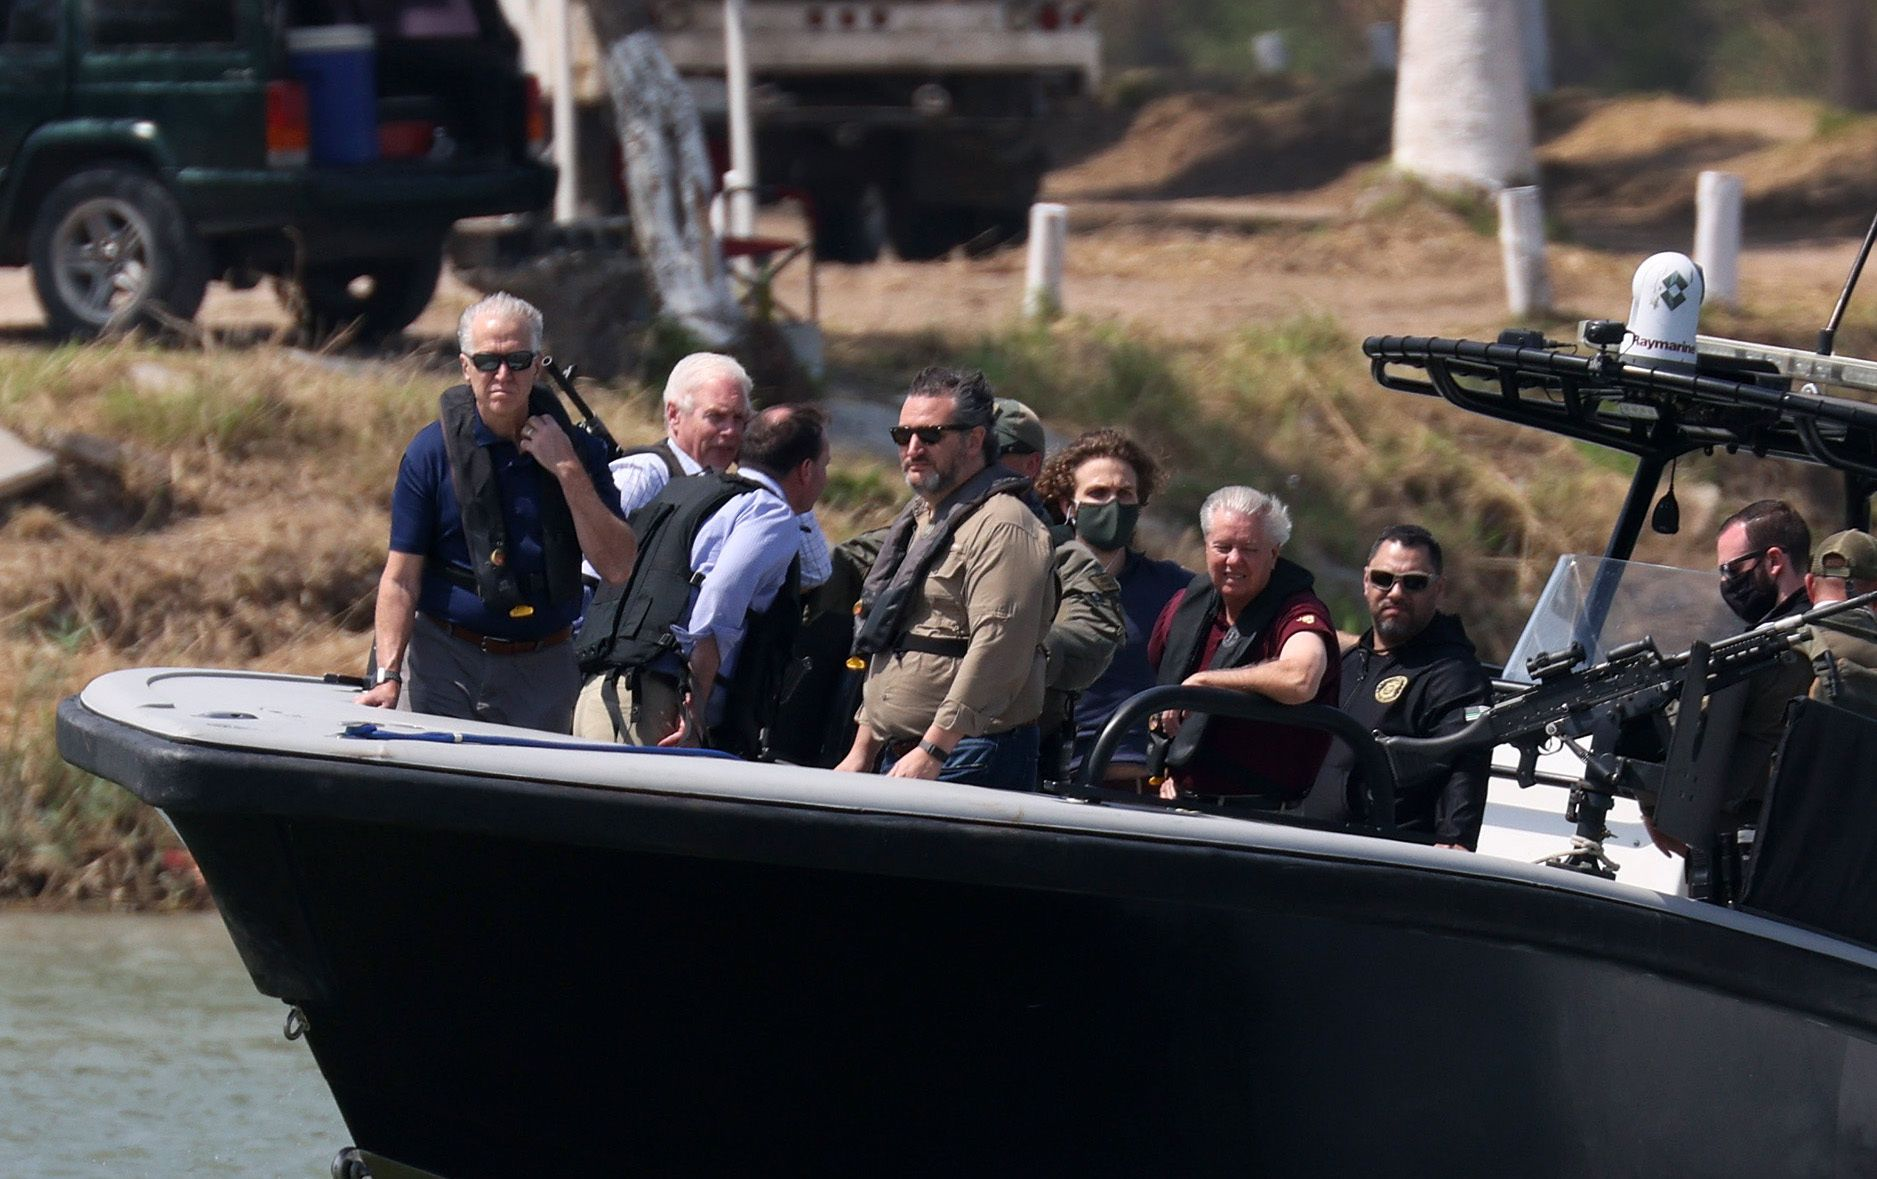 Sens. Ted Cruz (R-Texas) and Lindsey Graham (R-S.C.), third and fifth from left, are seen with others aboard a Texas Departme